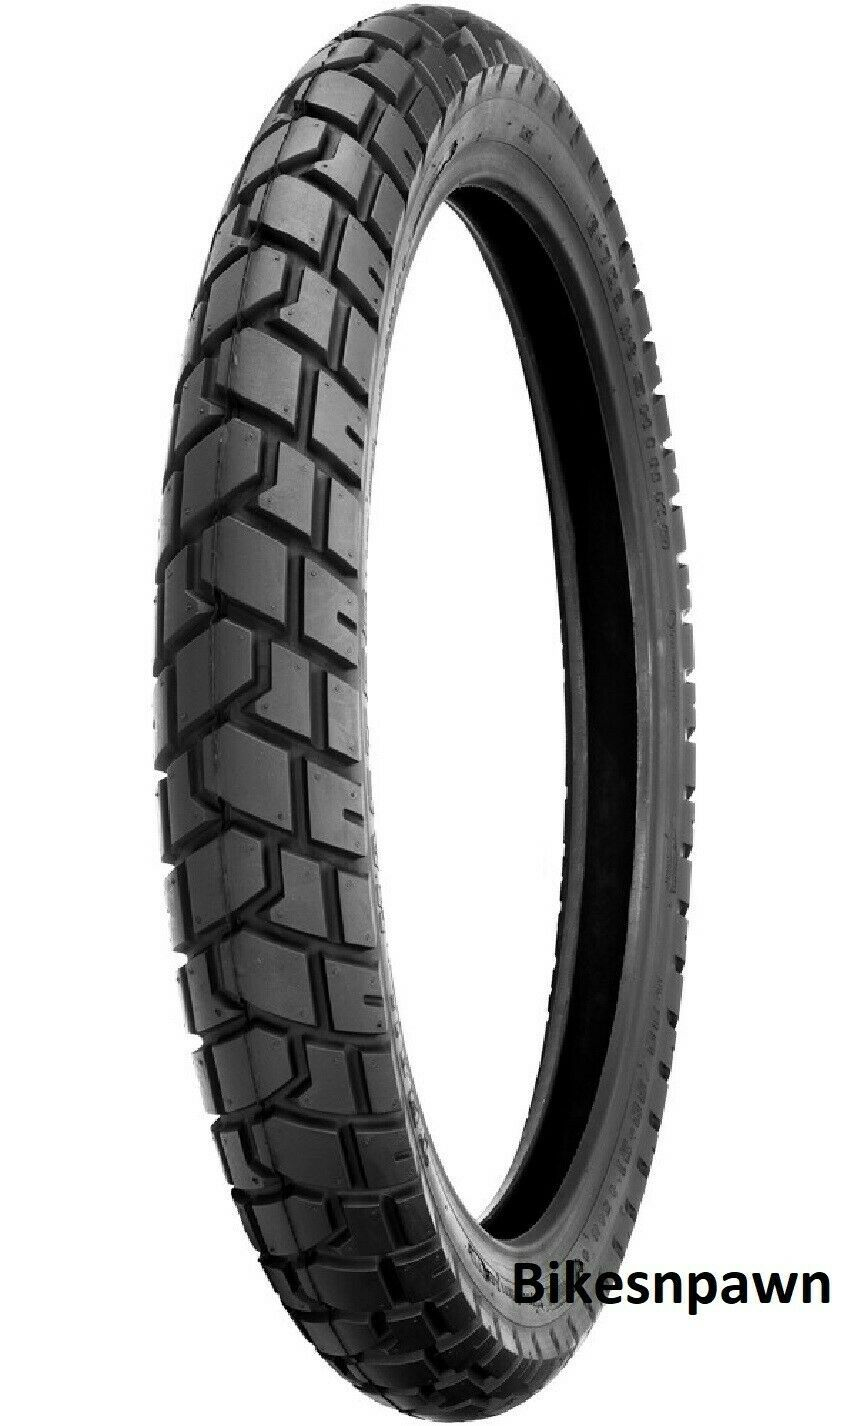 New 120/70R17 TL Shinko 705 Series Dual Sport Radial Front Motorcycle Tire 58H